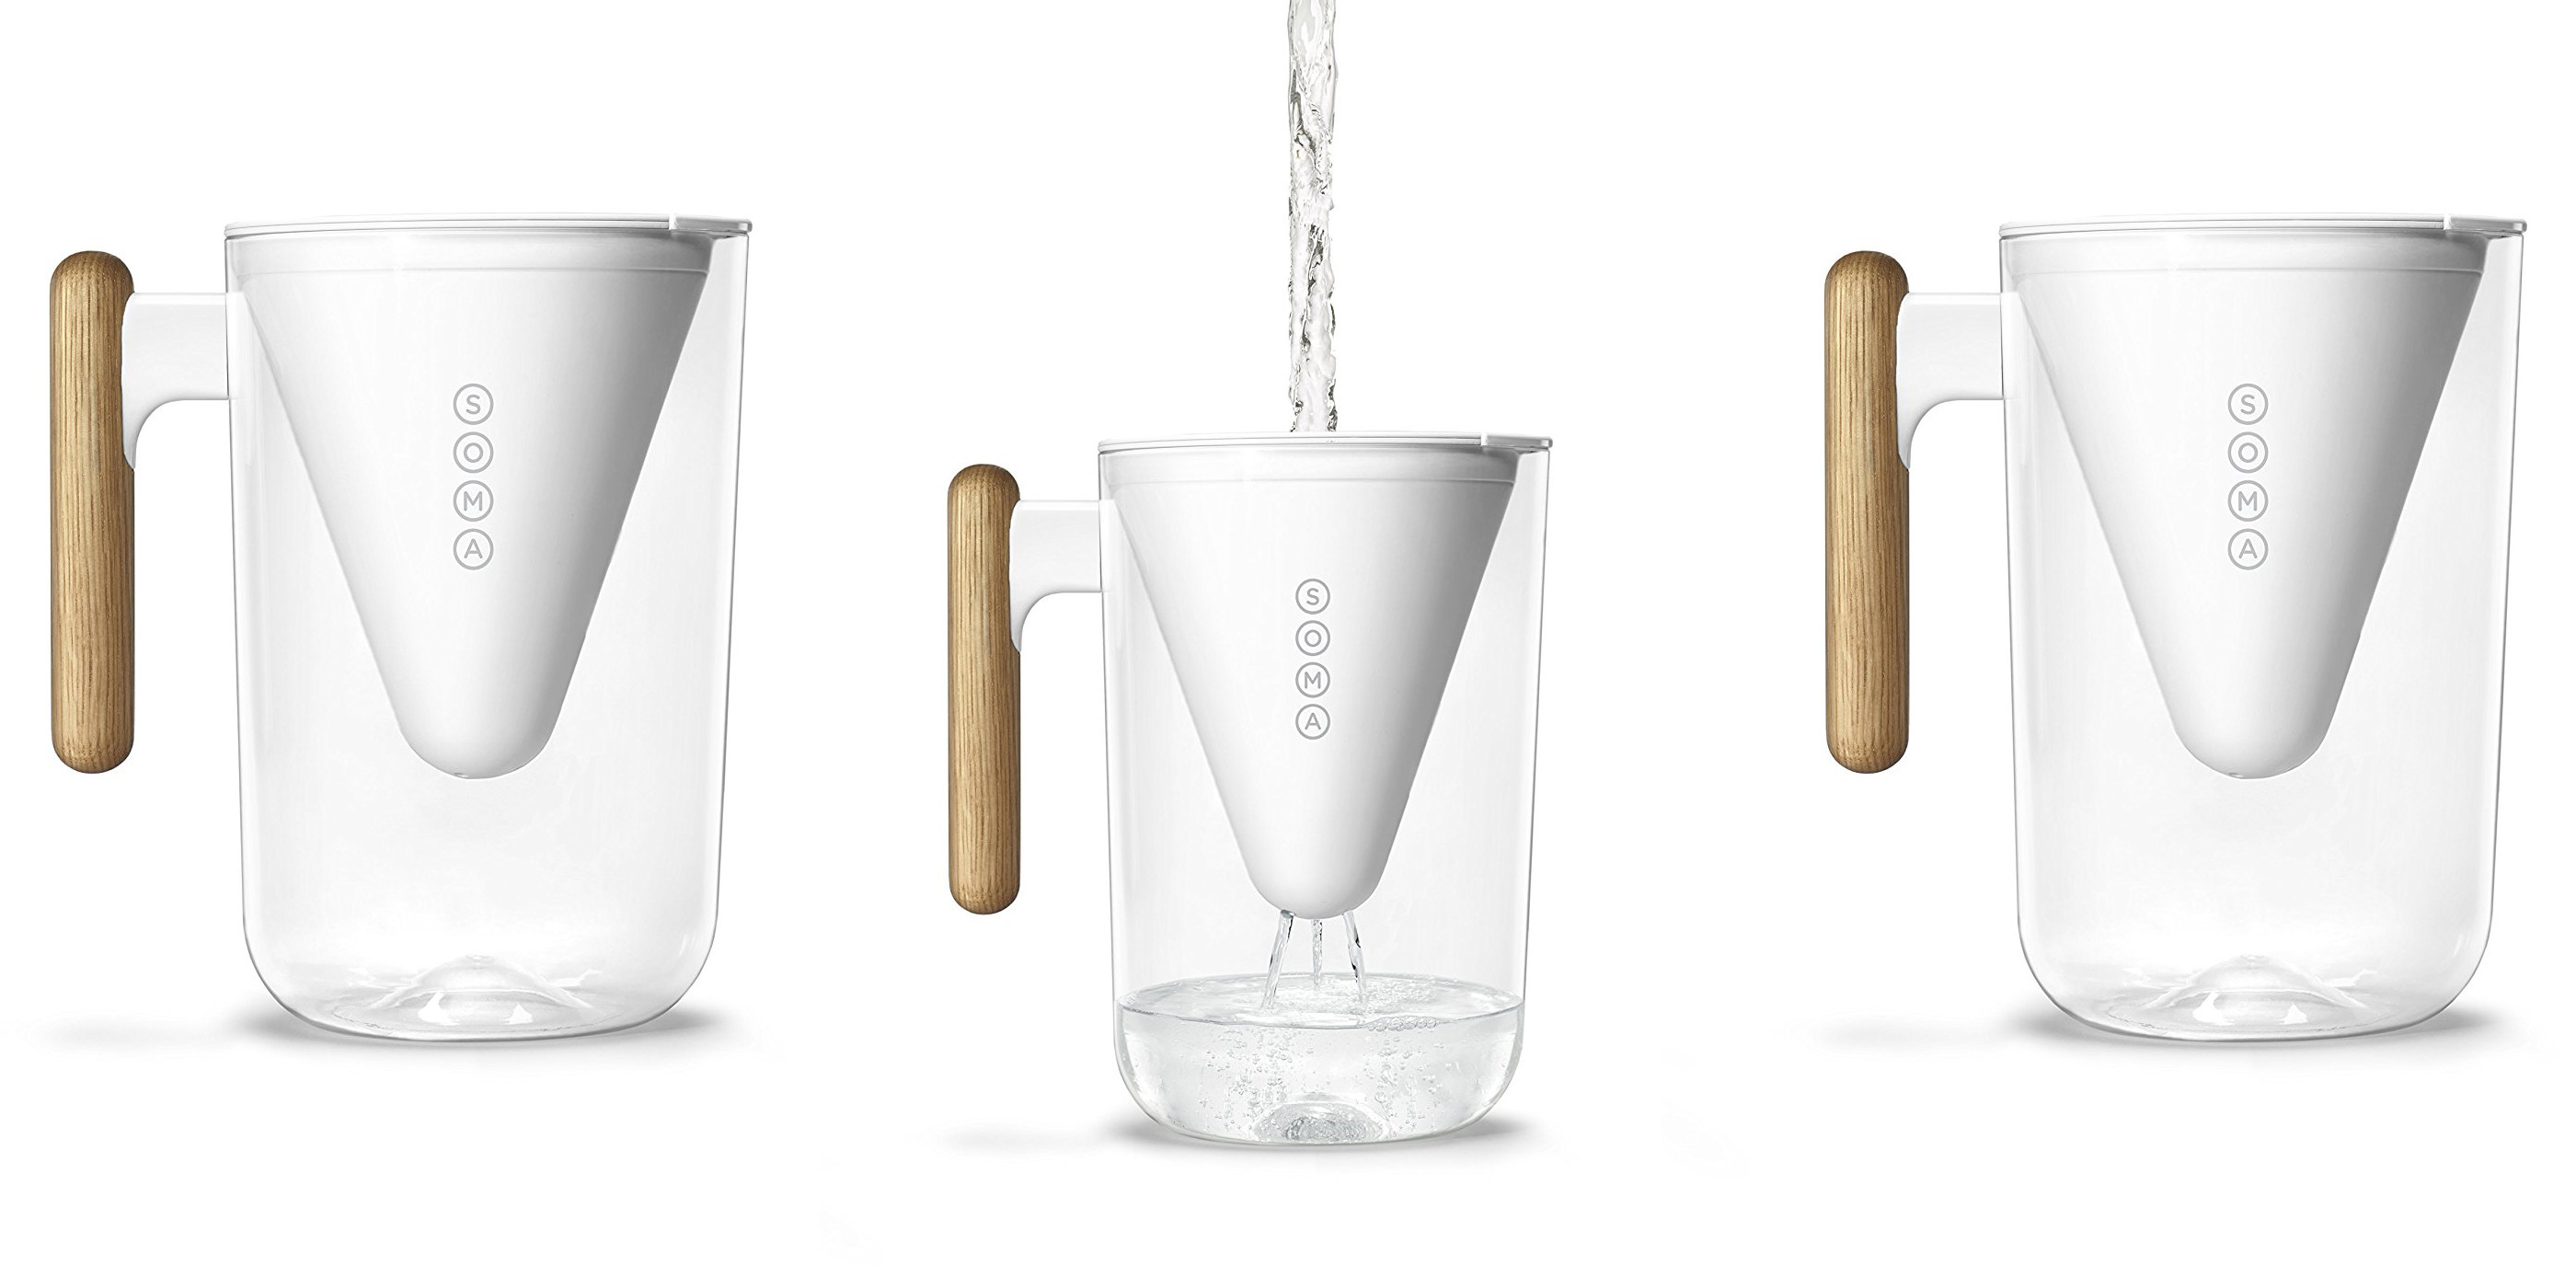 soma-water-filter-pitcher-01